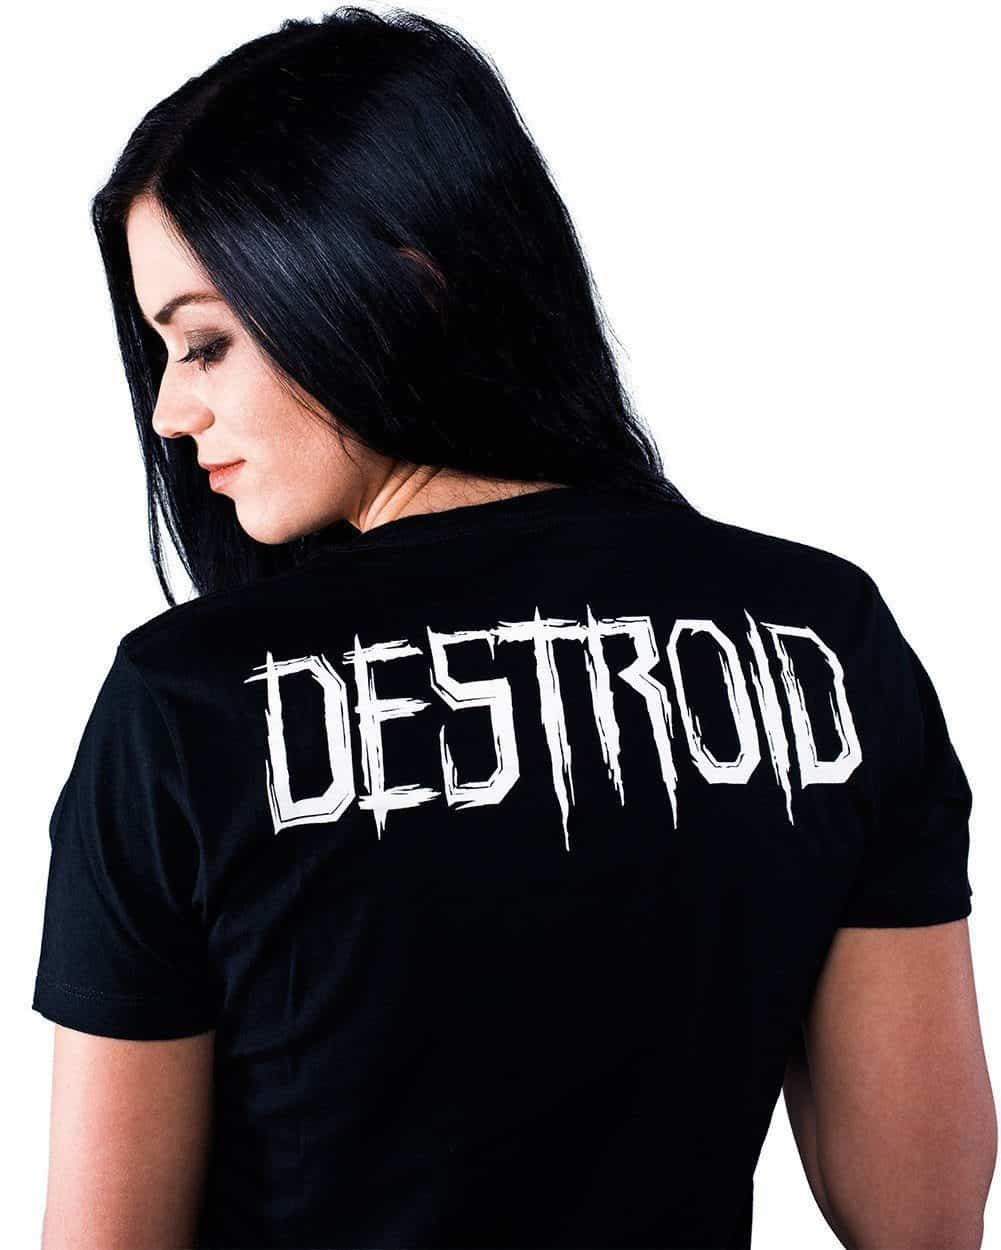 Destroid Girls Logo T-Shirt